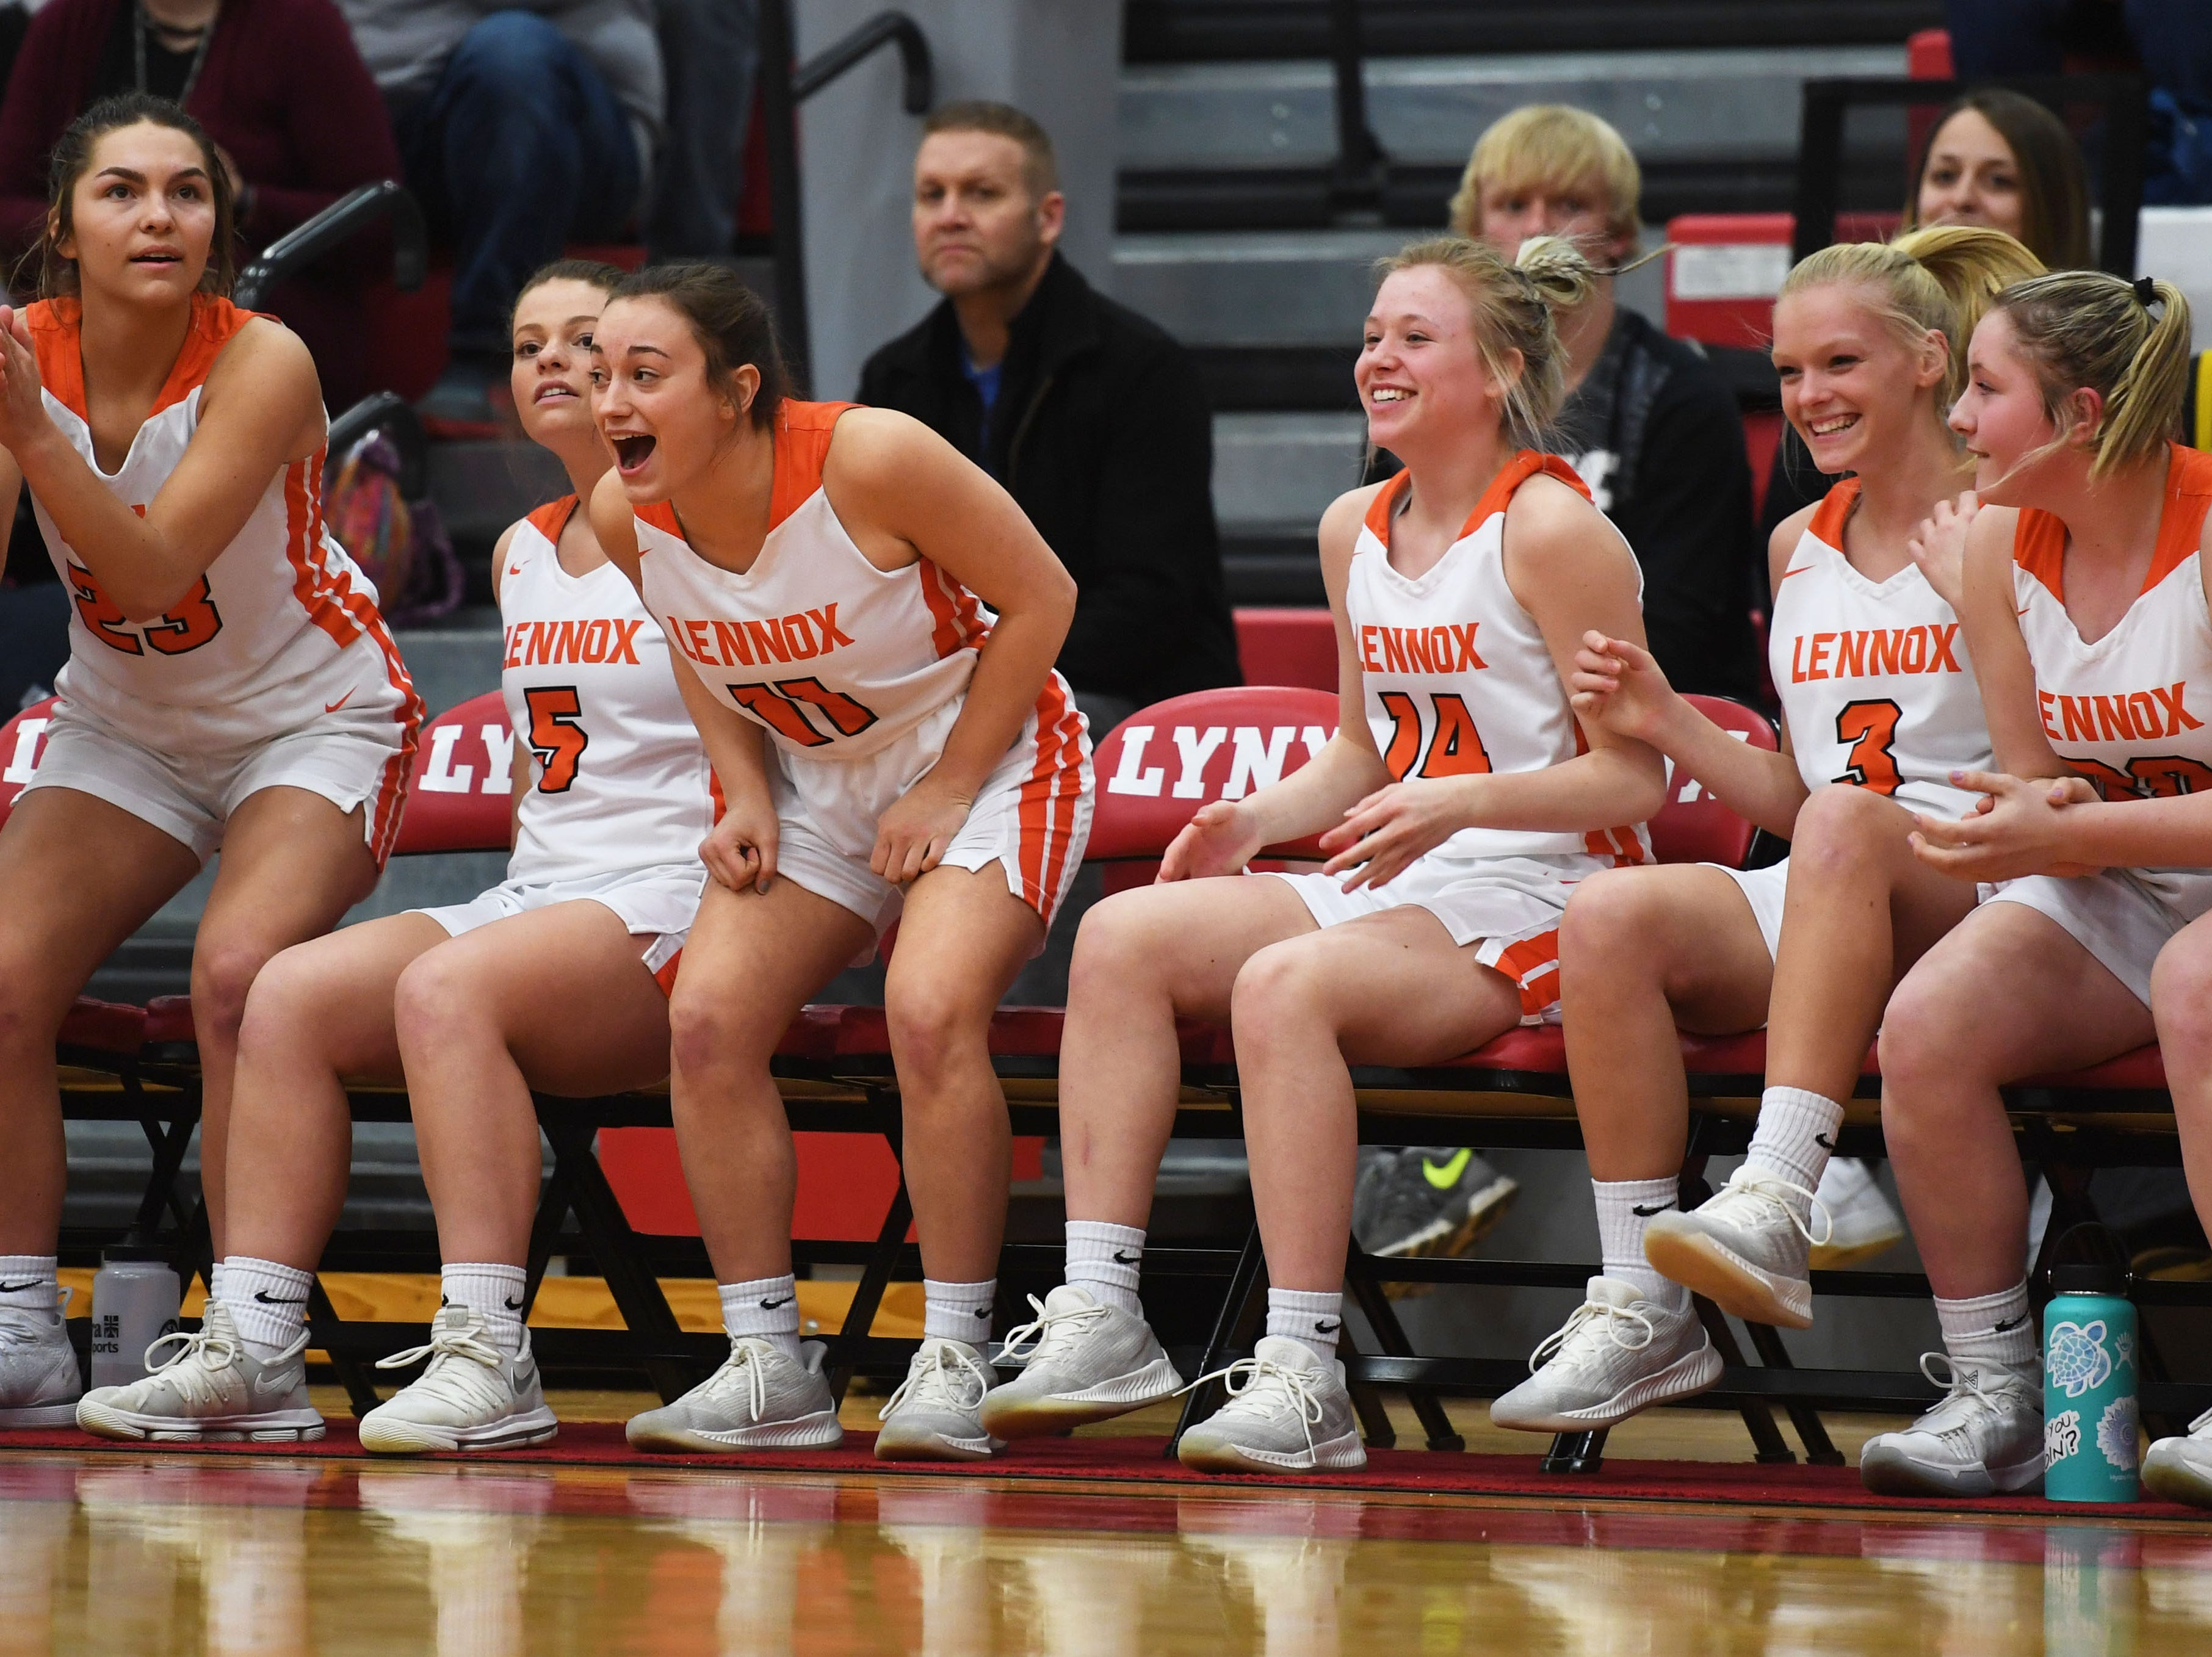 Lennox's sideline reacts during the game against Sioux Falls Christian Thursday, March 7, at Brandon Valley High School in Brandon Valley.